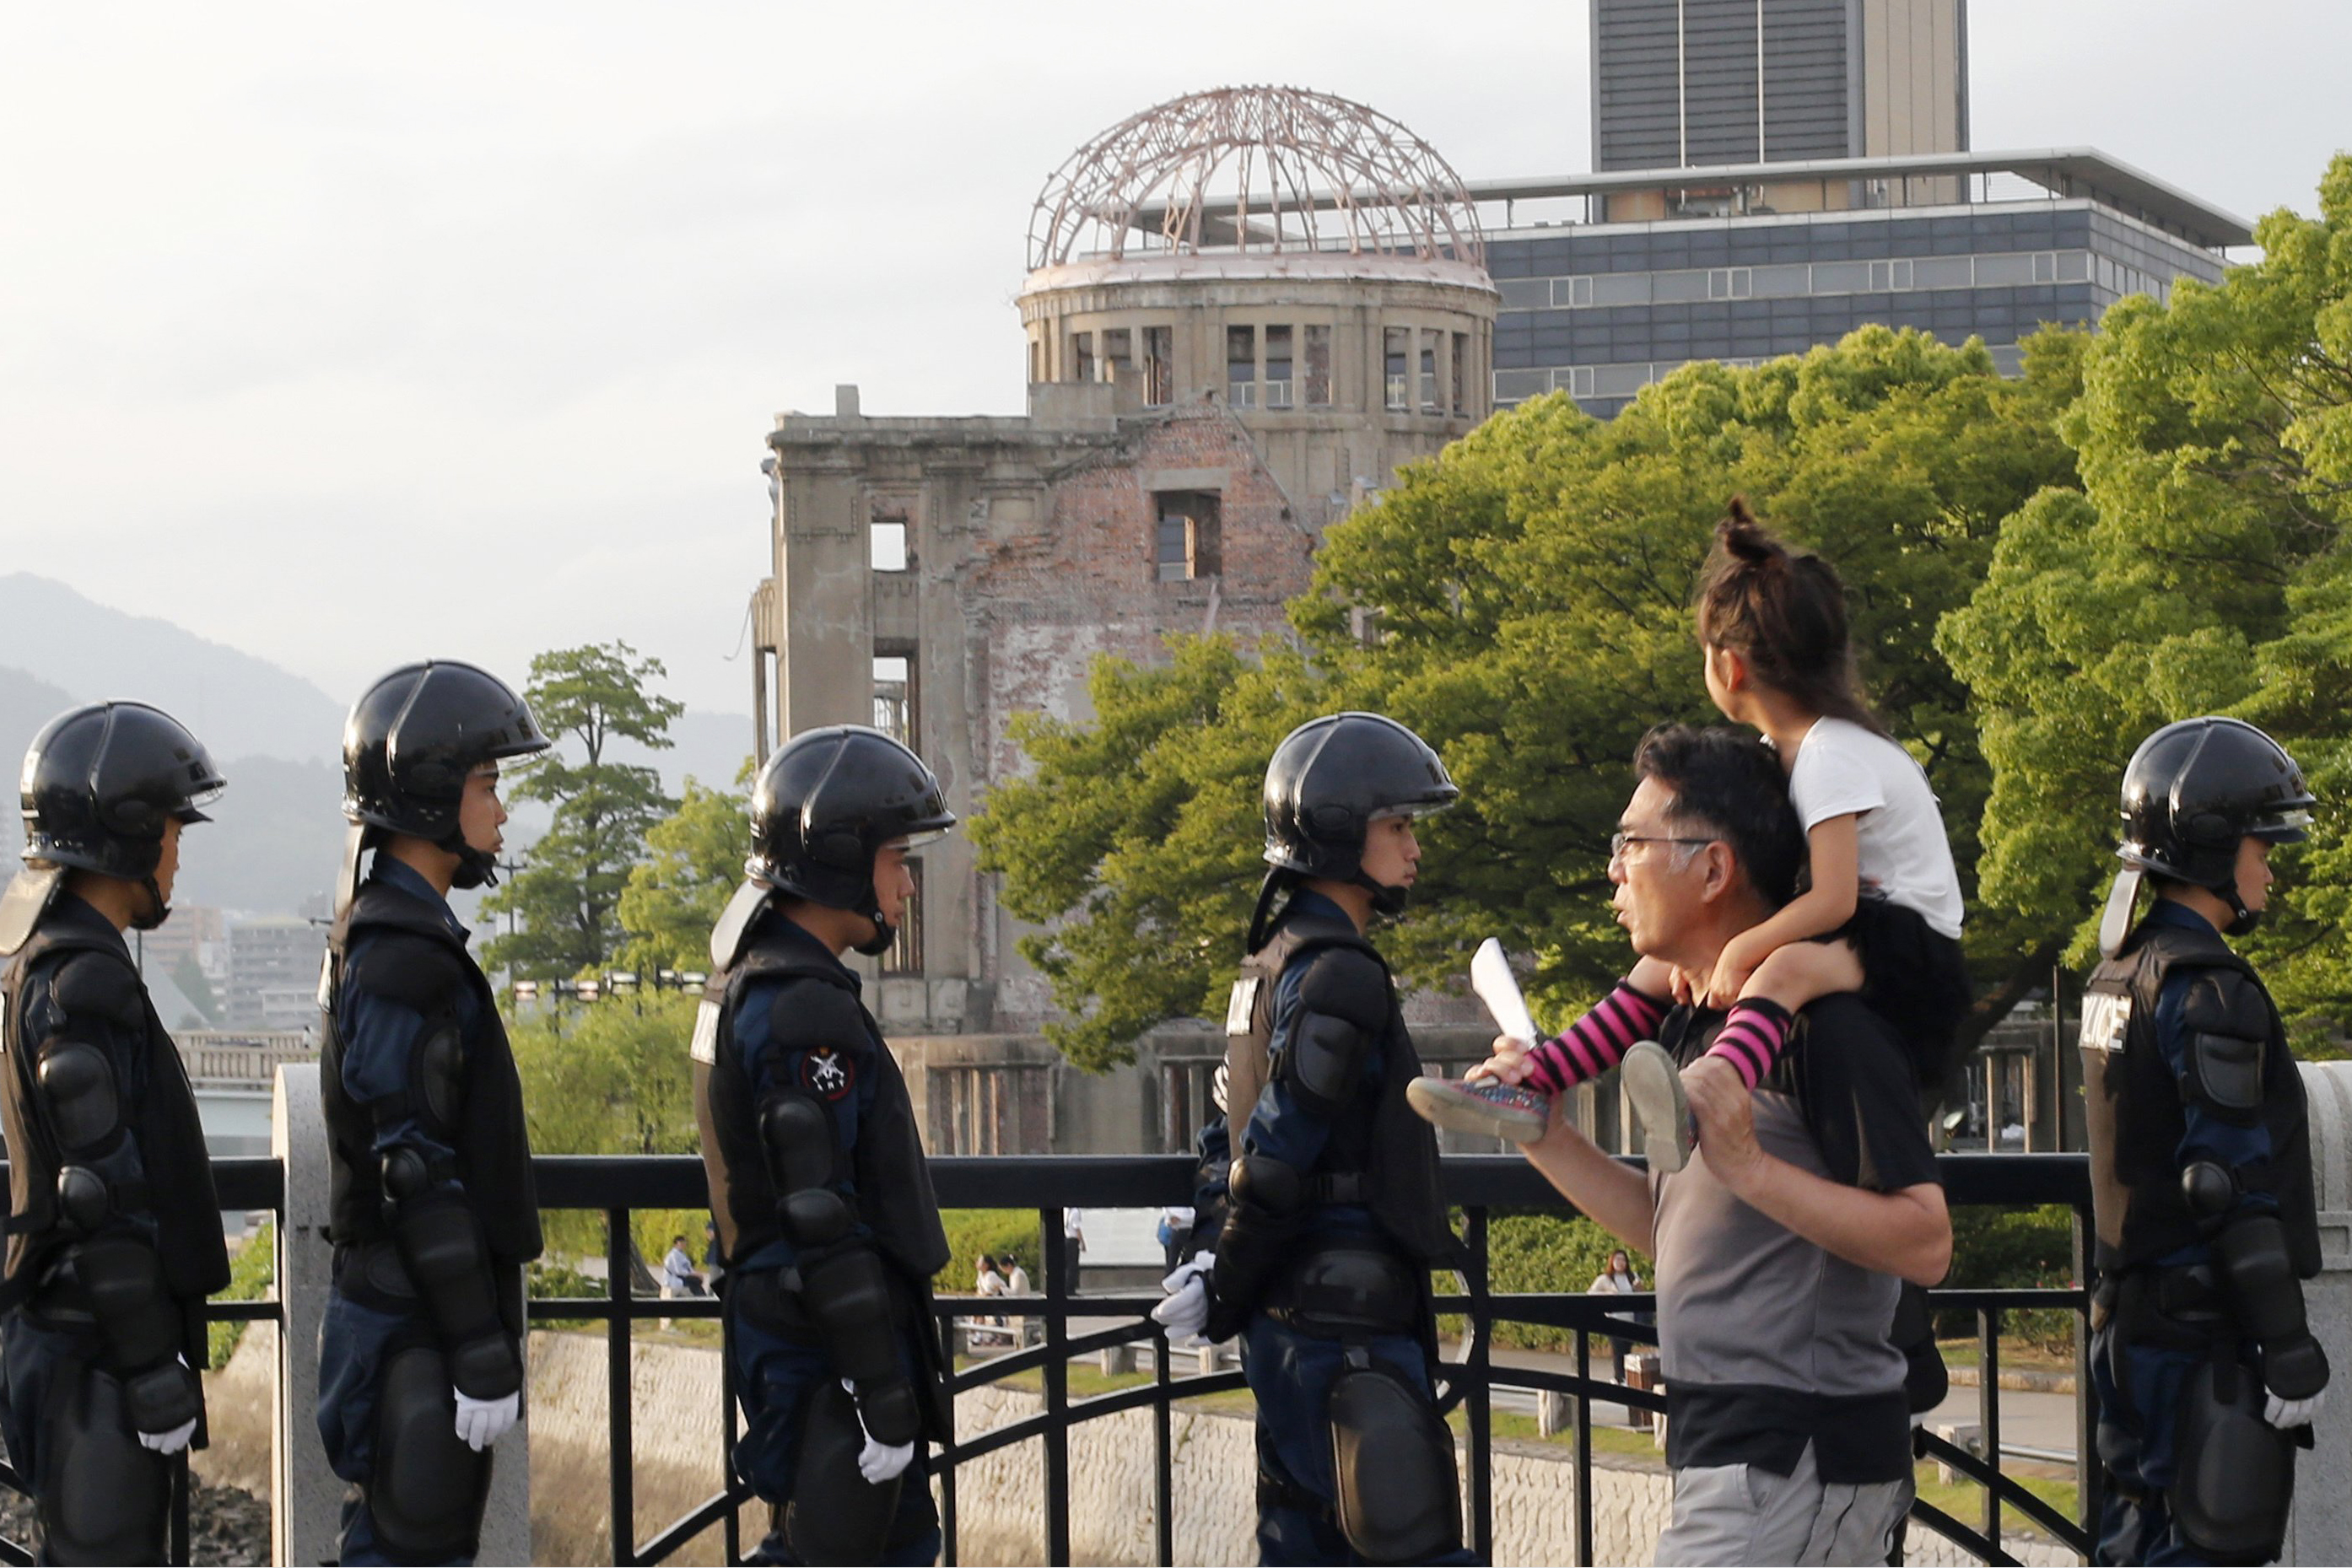 With the Atomic Bomb Dome as a backdrop, passers-by move past riot police near Hiroshima Peace Memorial Museum in Hiroshima, southwestern Japan, Thursday, May 26, 2016.